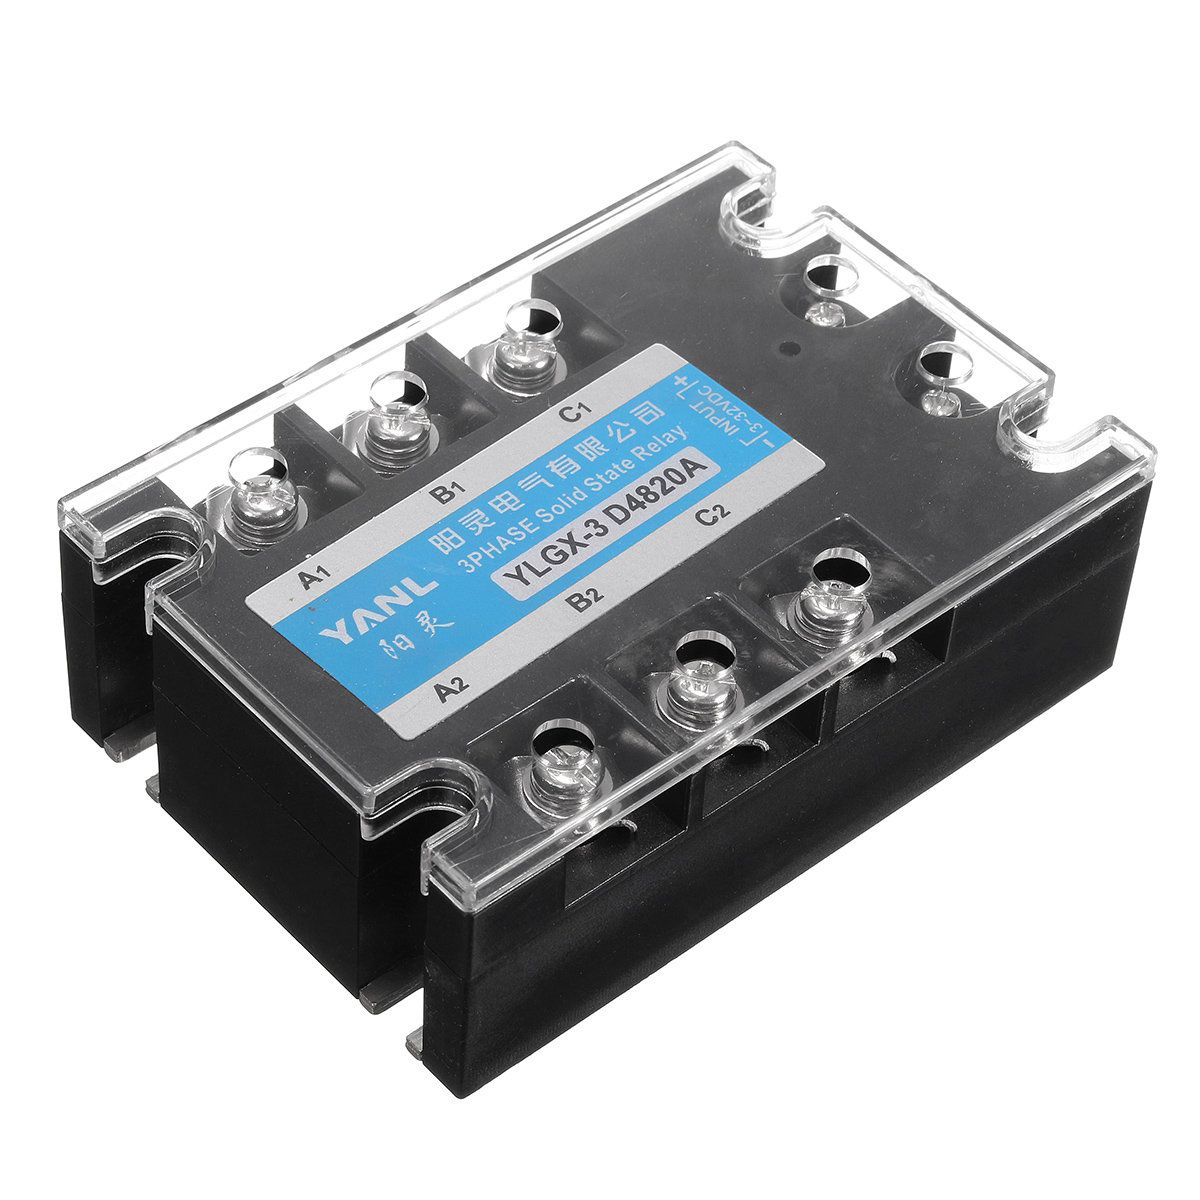 3 Phase DC AC Solid State Relay SSR20A 20A 332VDC480VAC - Solid State Relay Dc Arduino